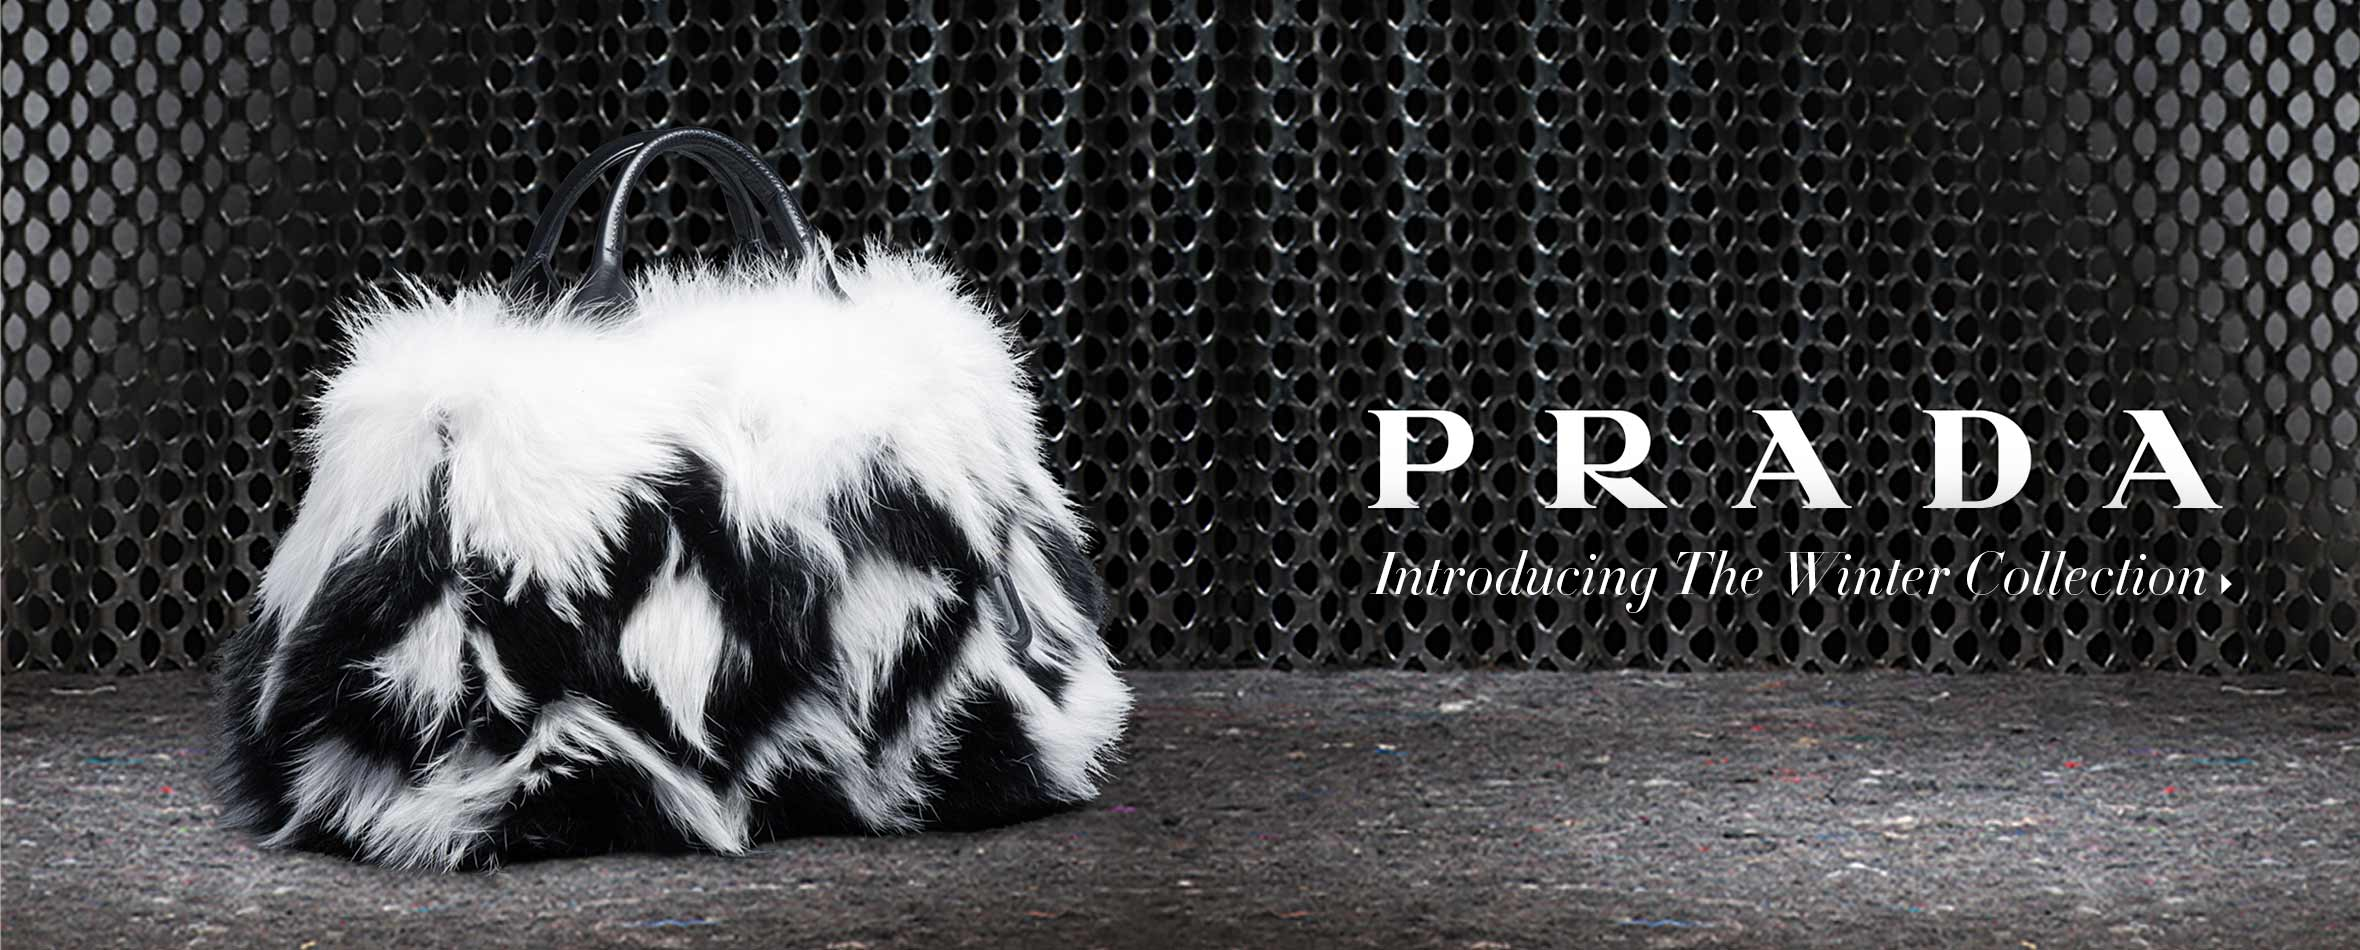 Prada Winter Collection